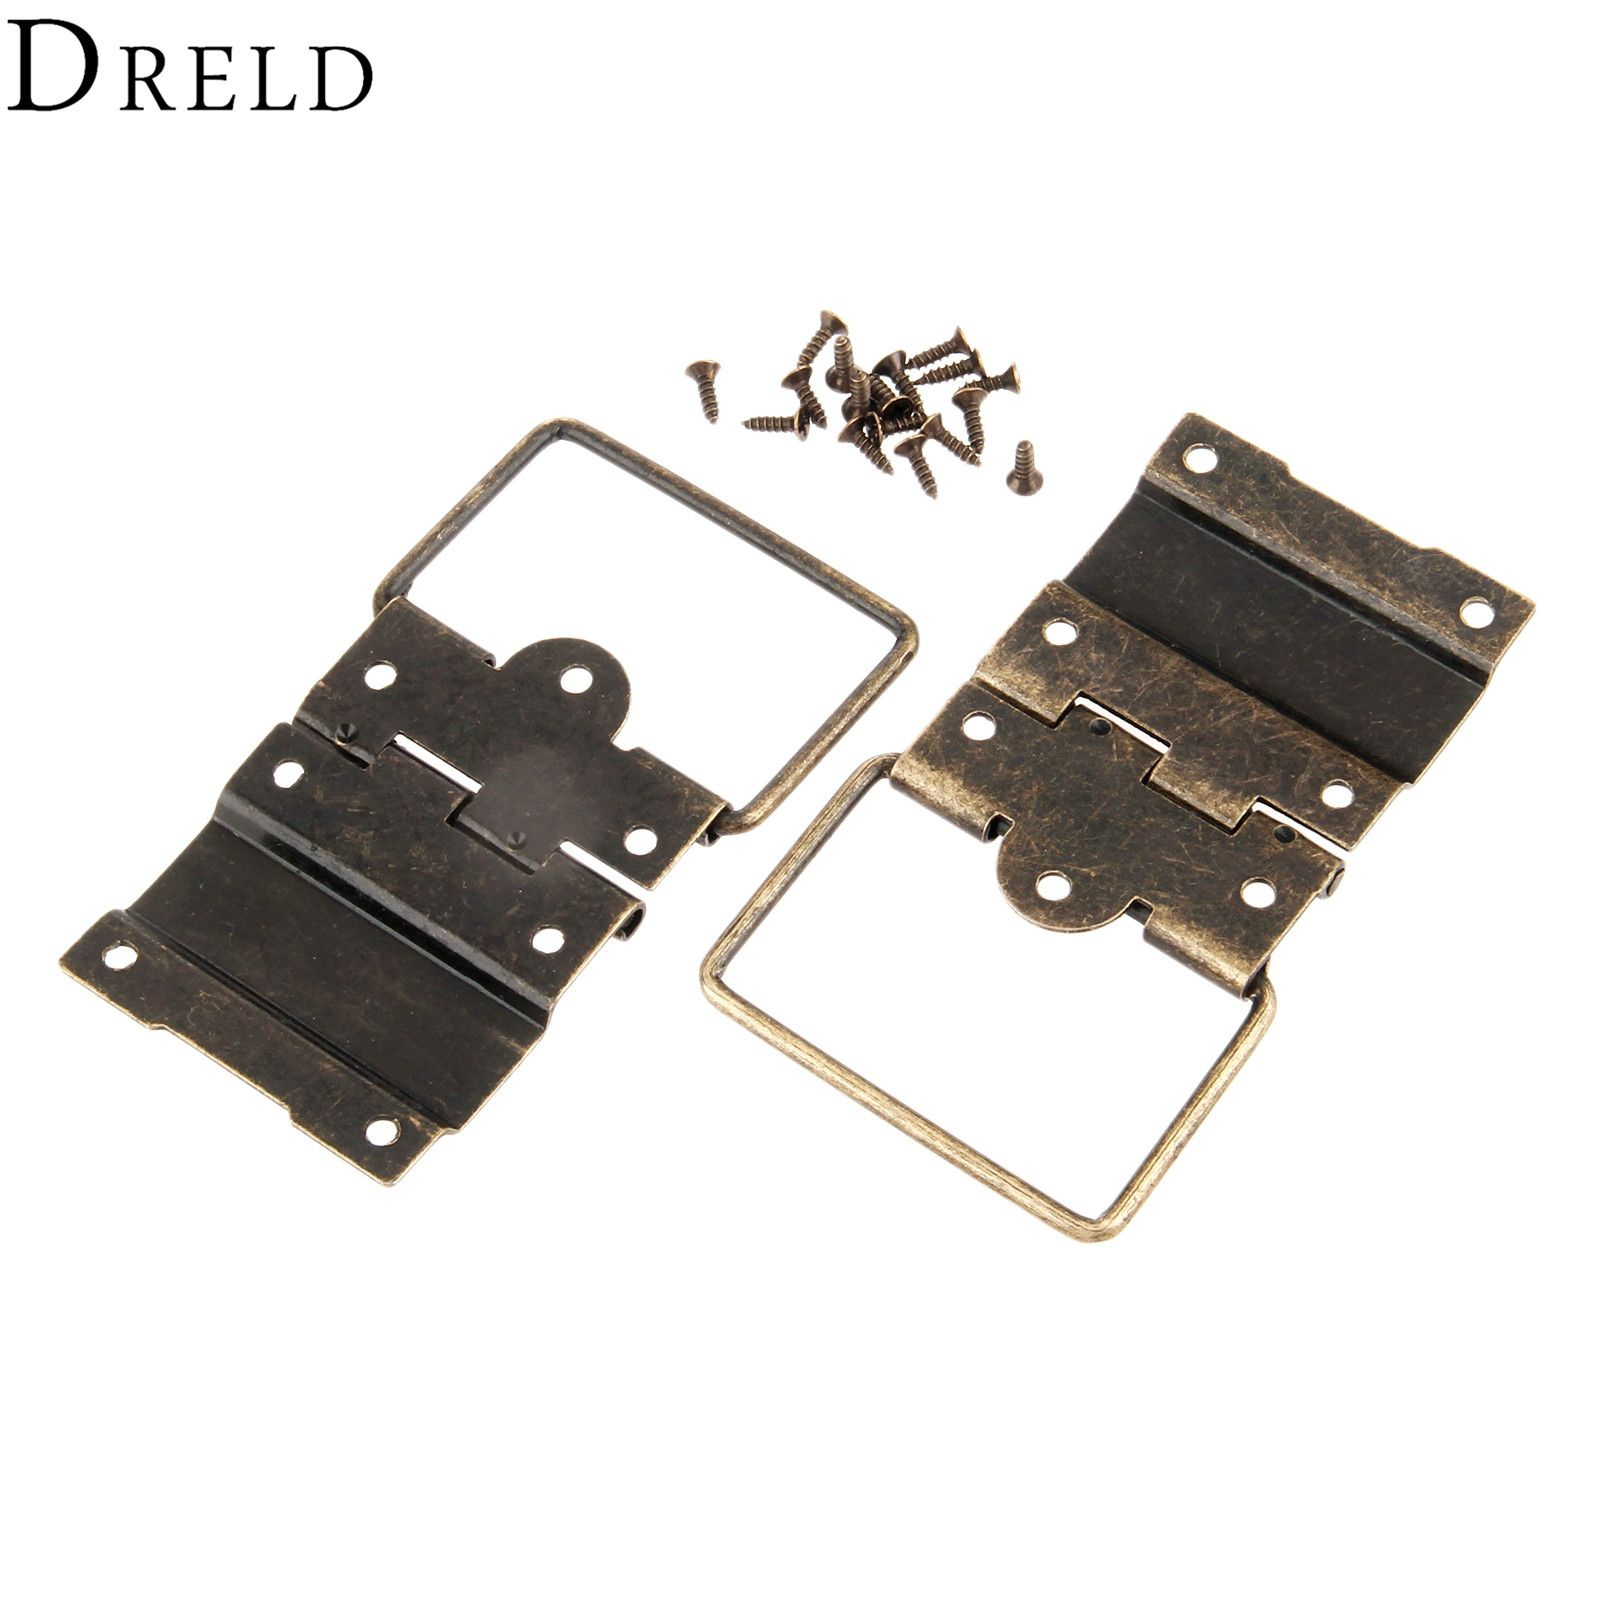 Dreld 2pcs 41 52mm Antique Cabinet Hinges Furniture Accessories Door Hinges Drawer Jewellery Box Hinges Jewelry Box Hinges Antique Cabinets Furniture Hardware